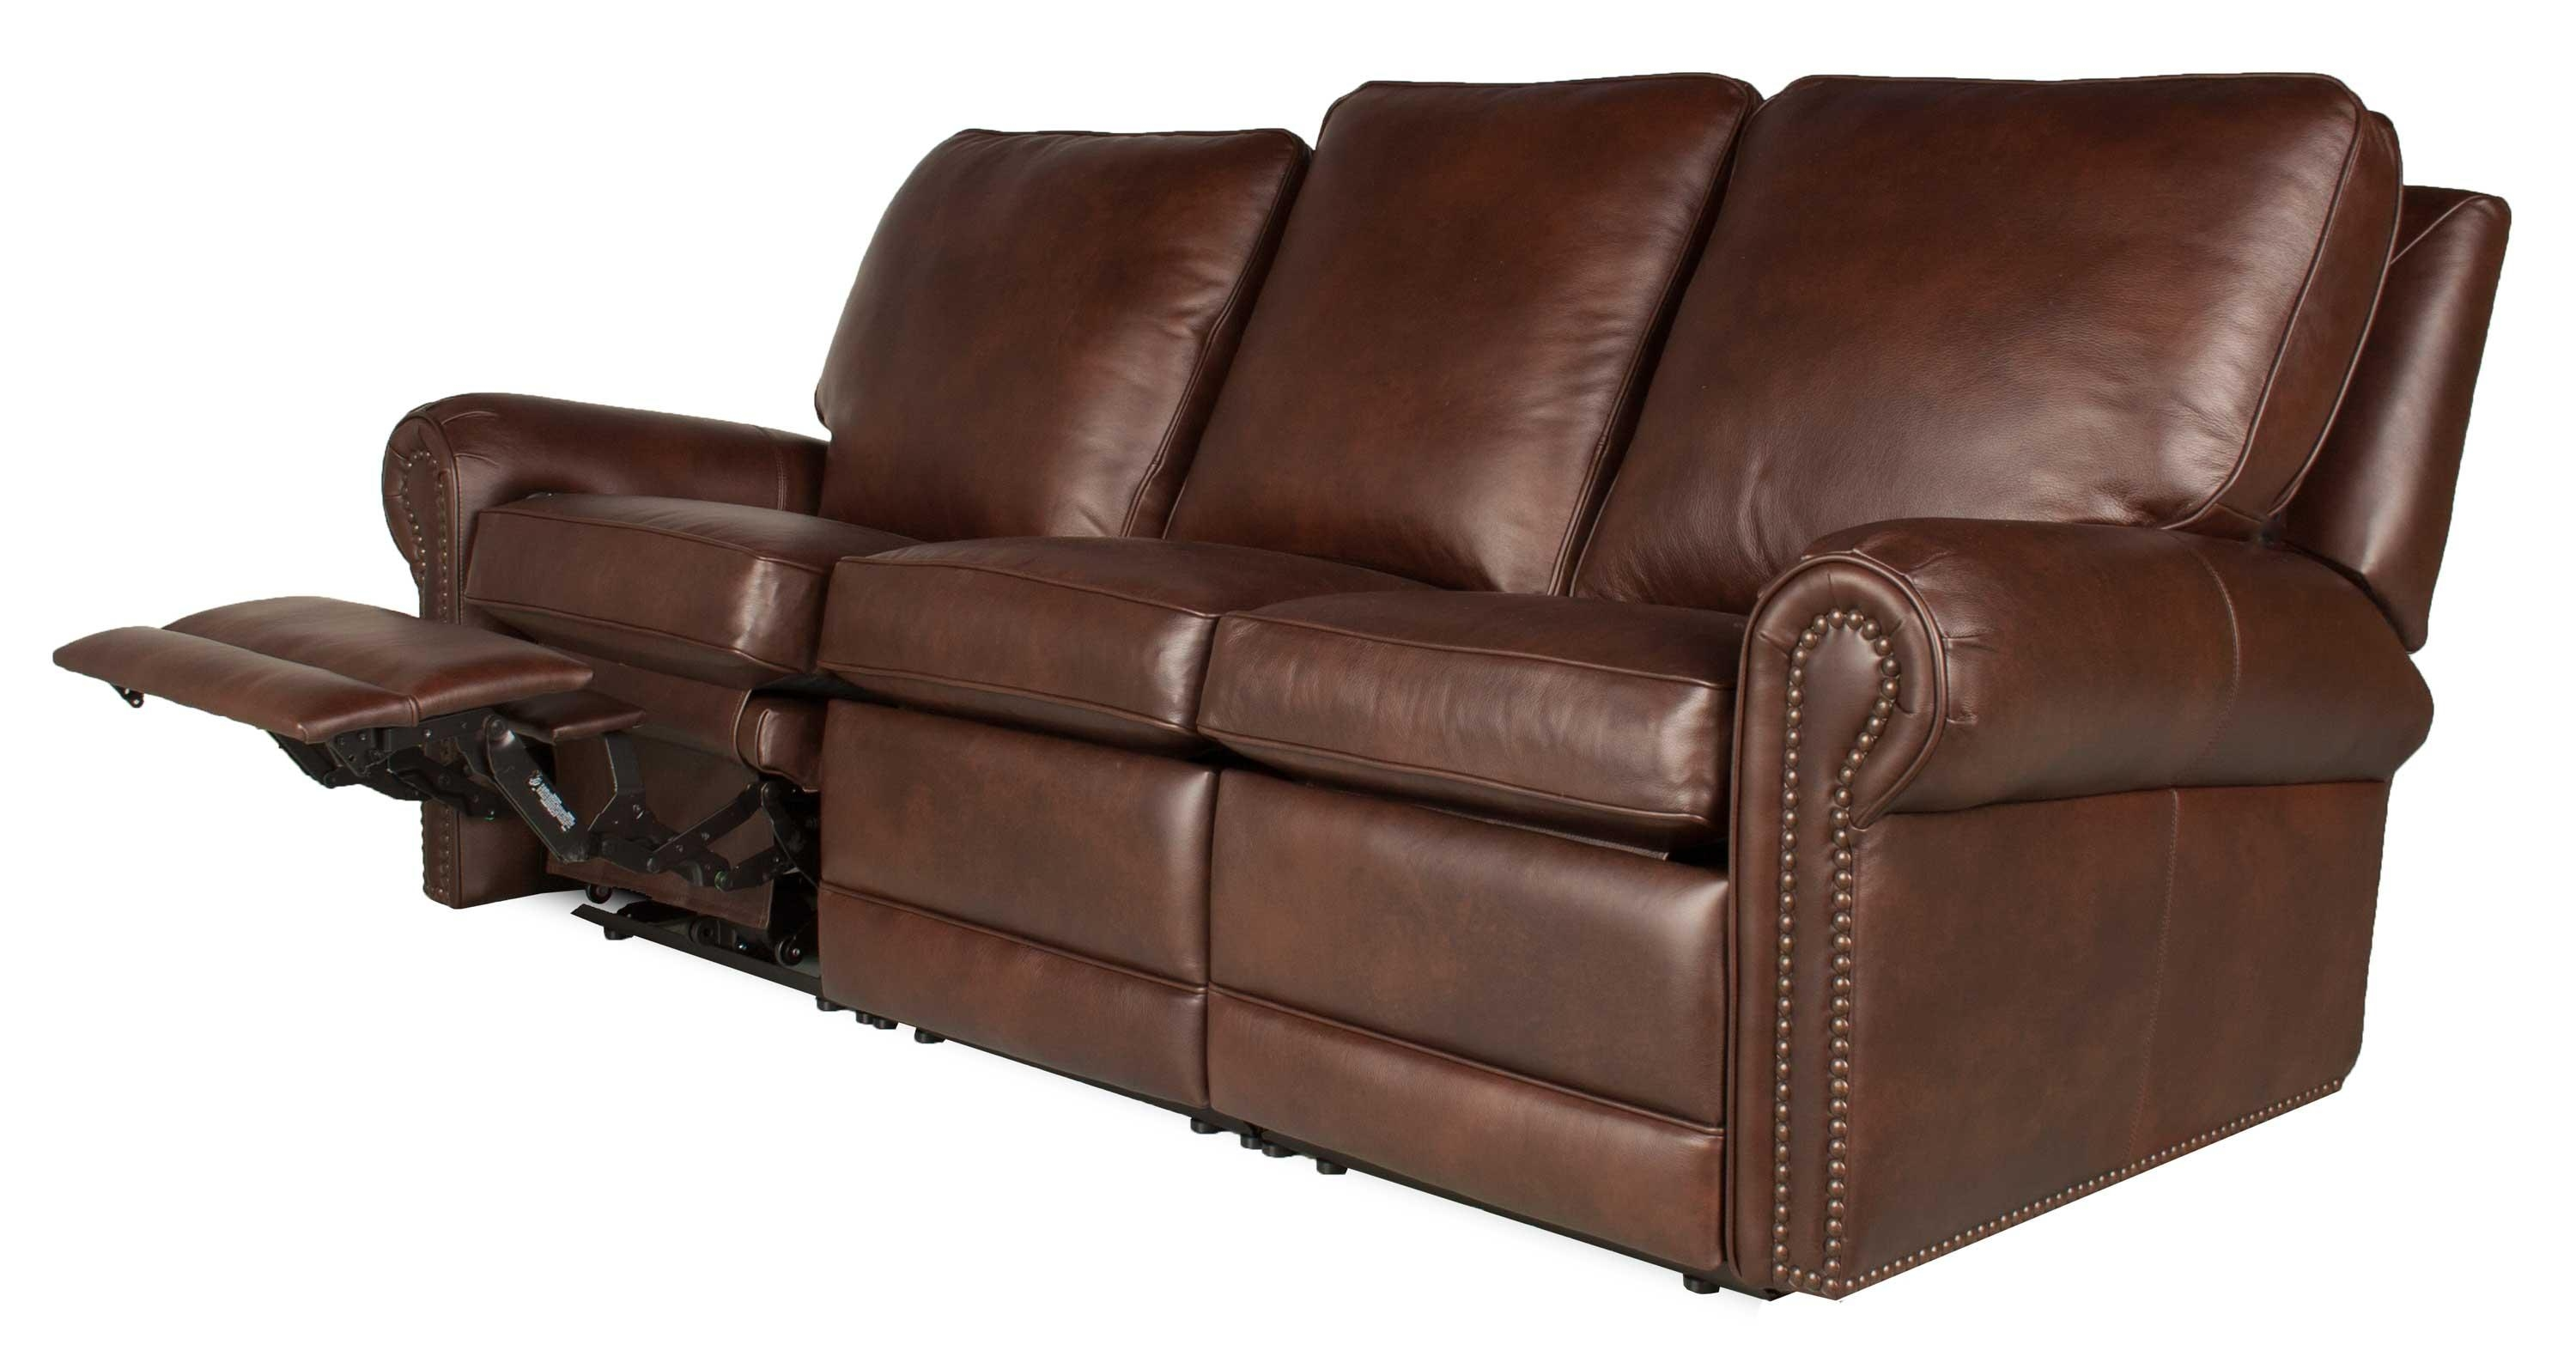 Sofas Center : Leather Recliner Sofa Seater Sale Stupendous Within Berkline Sofa (Image 17 of 20)